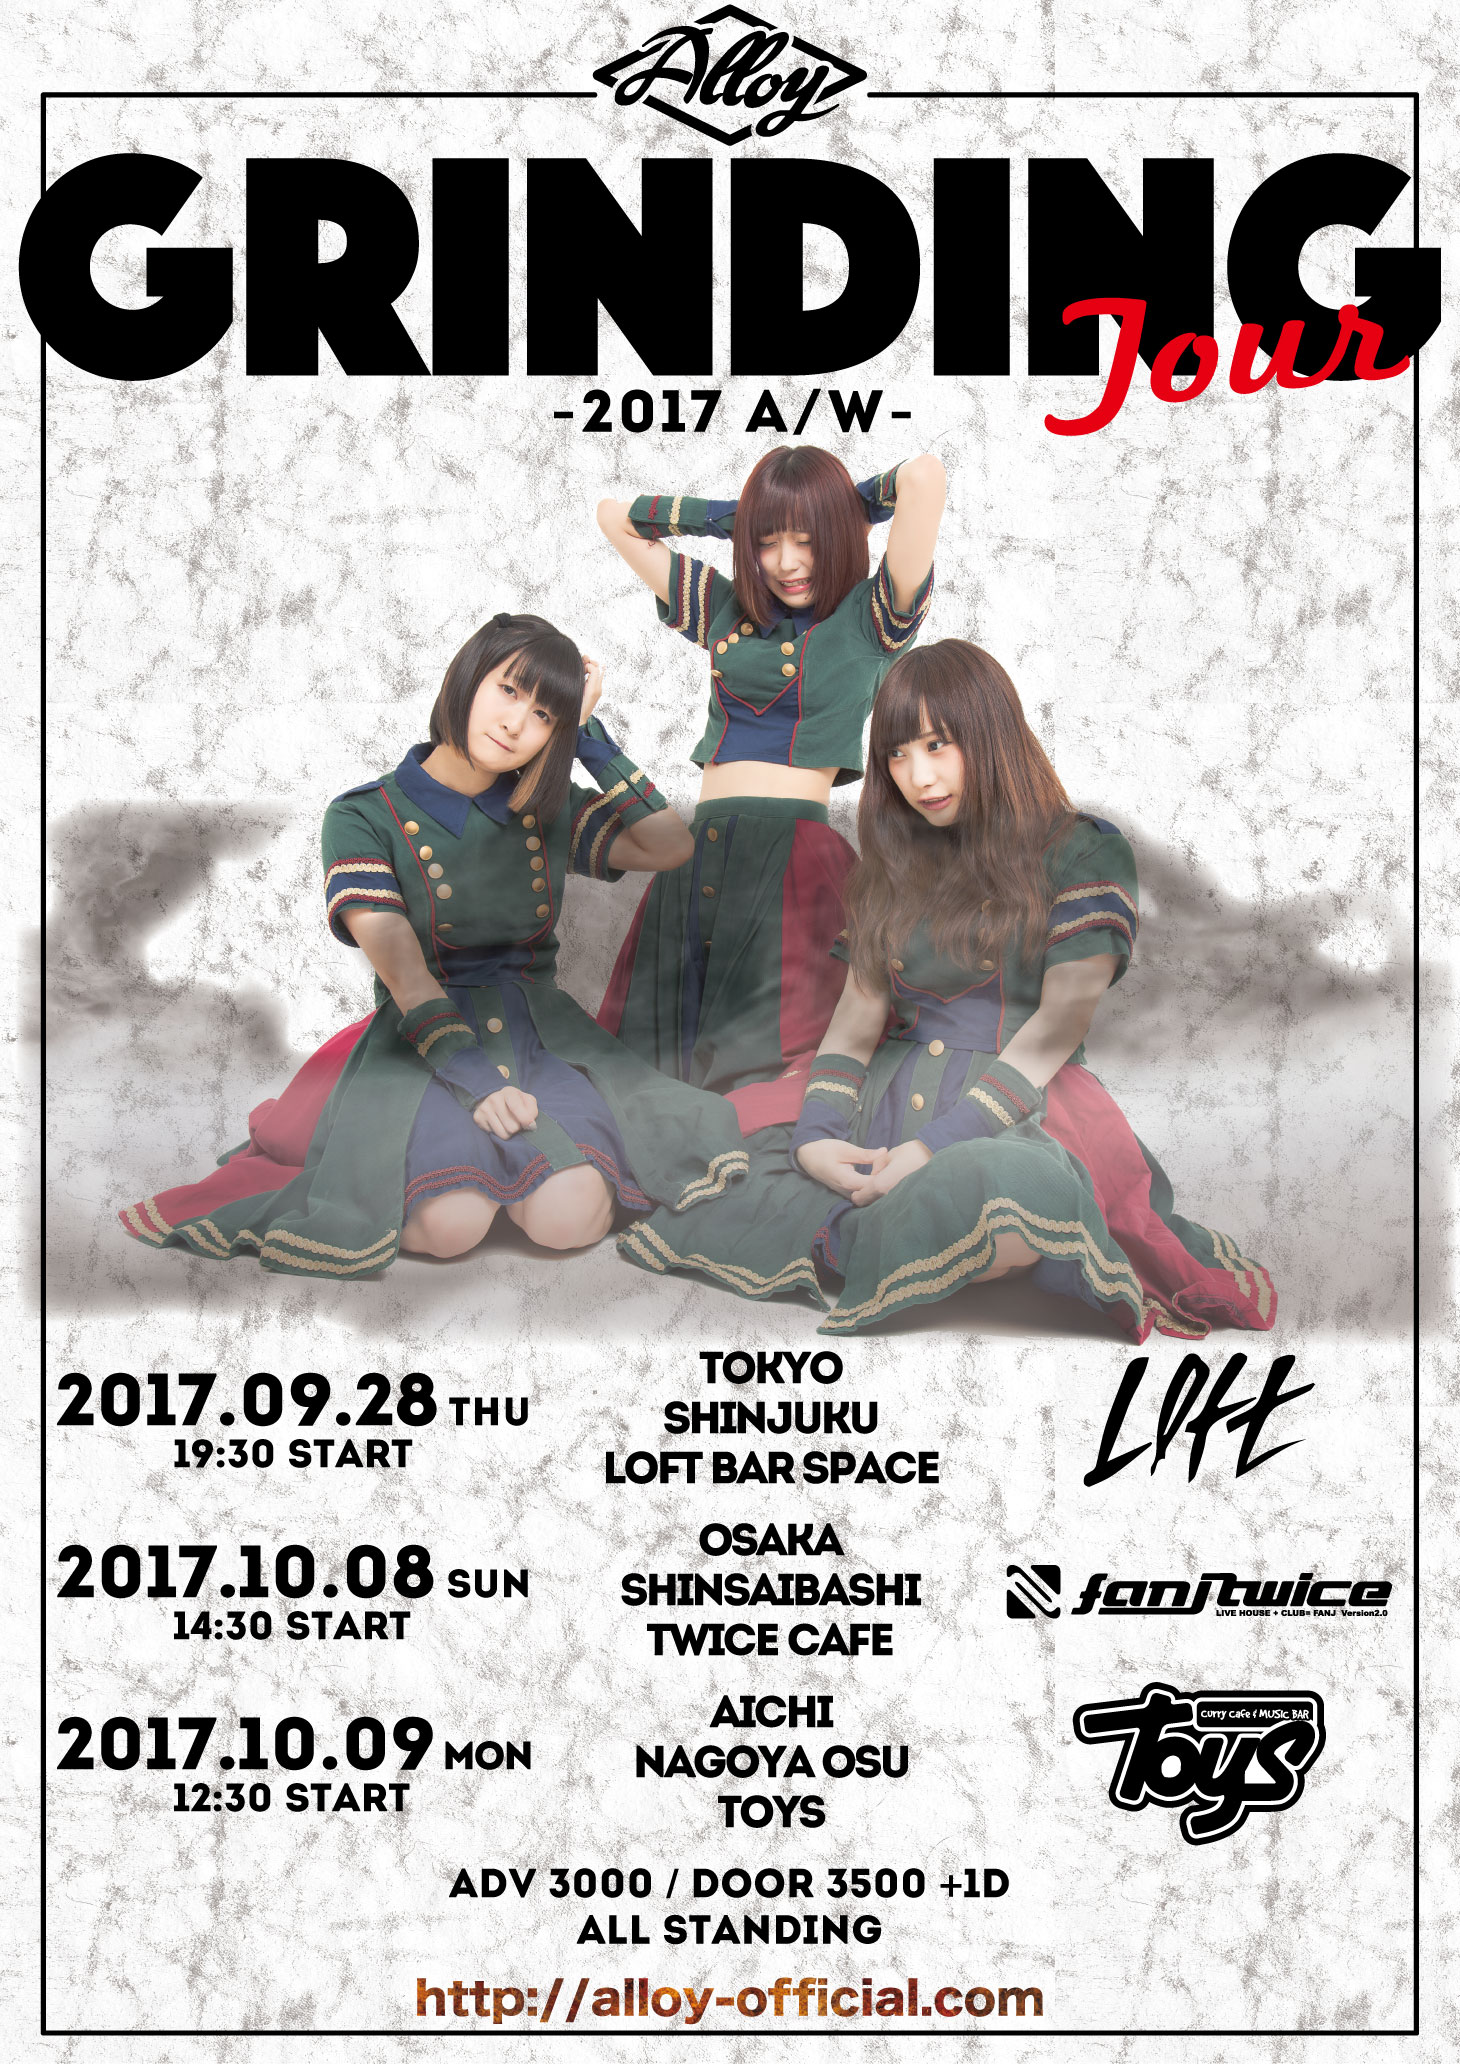 Alloy_GRINDINGTour_ポスター